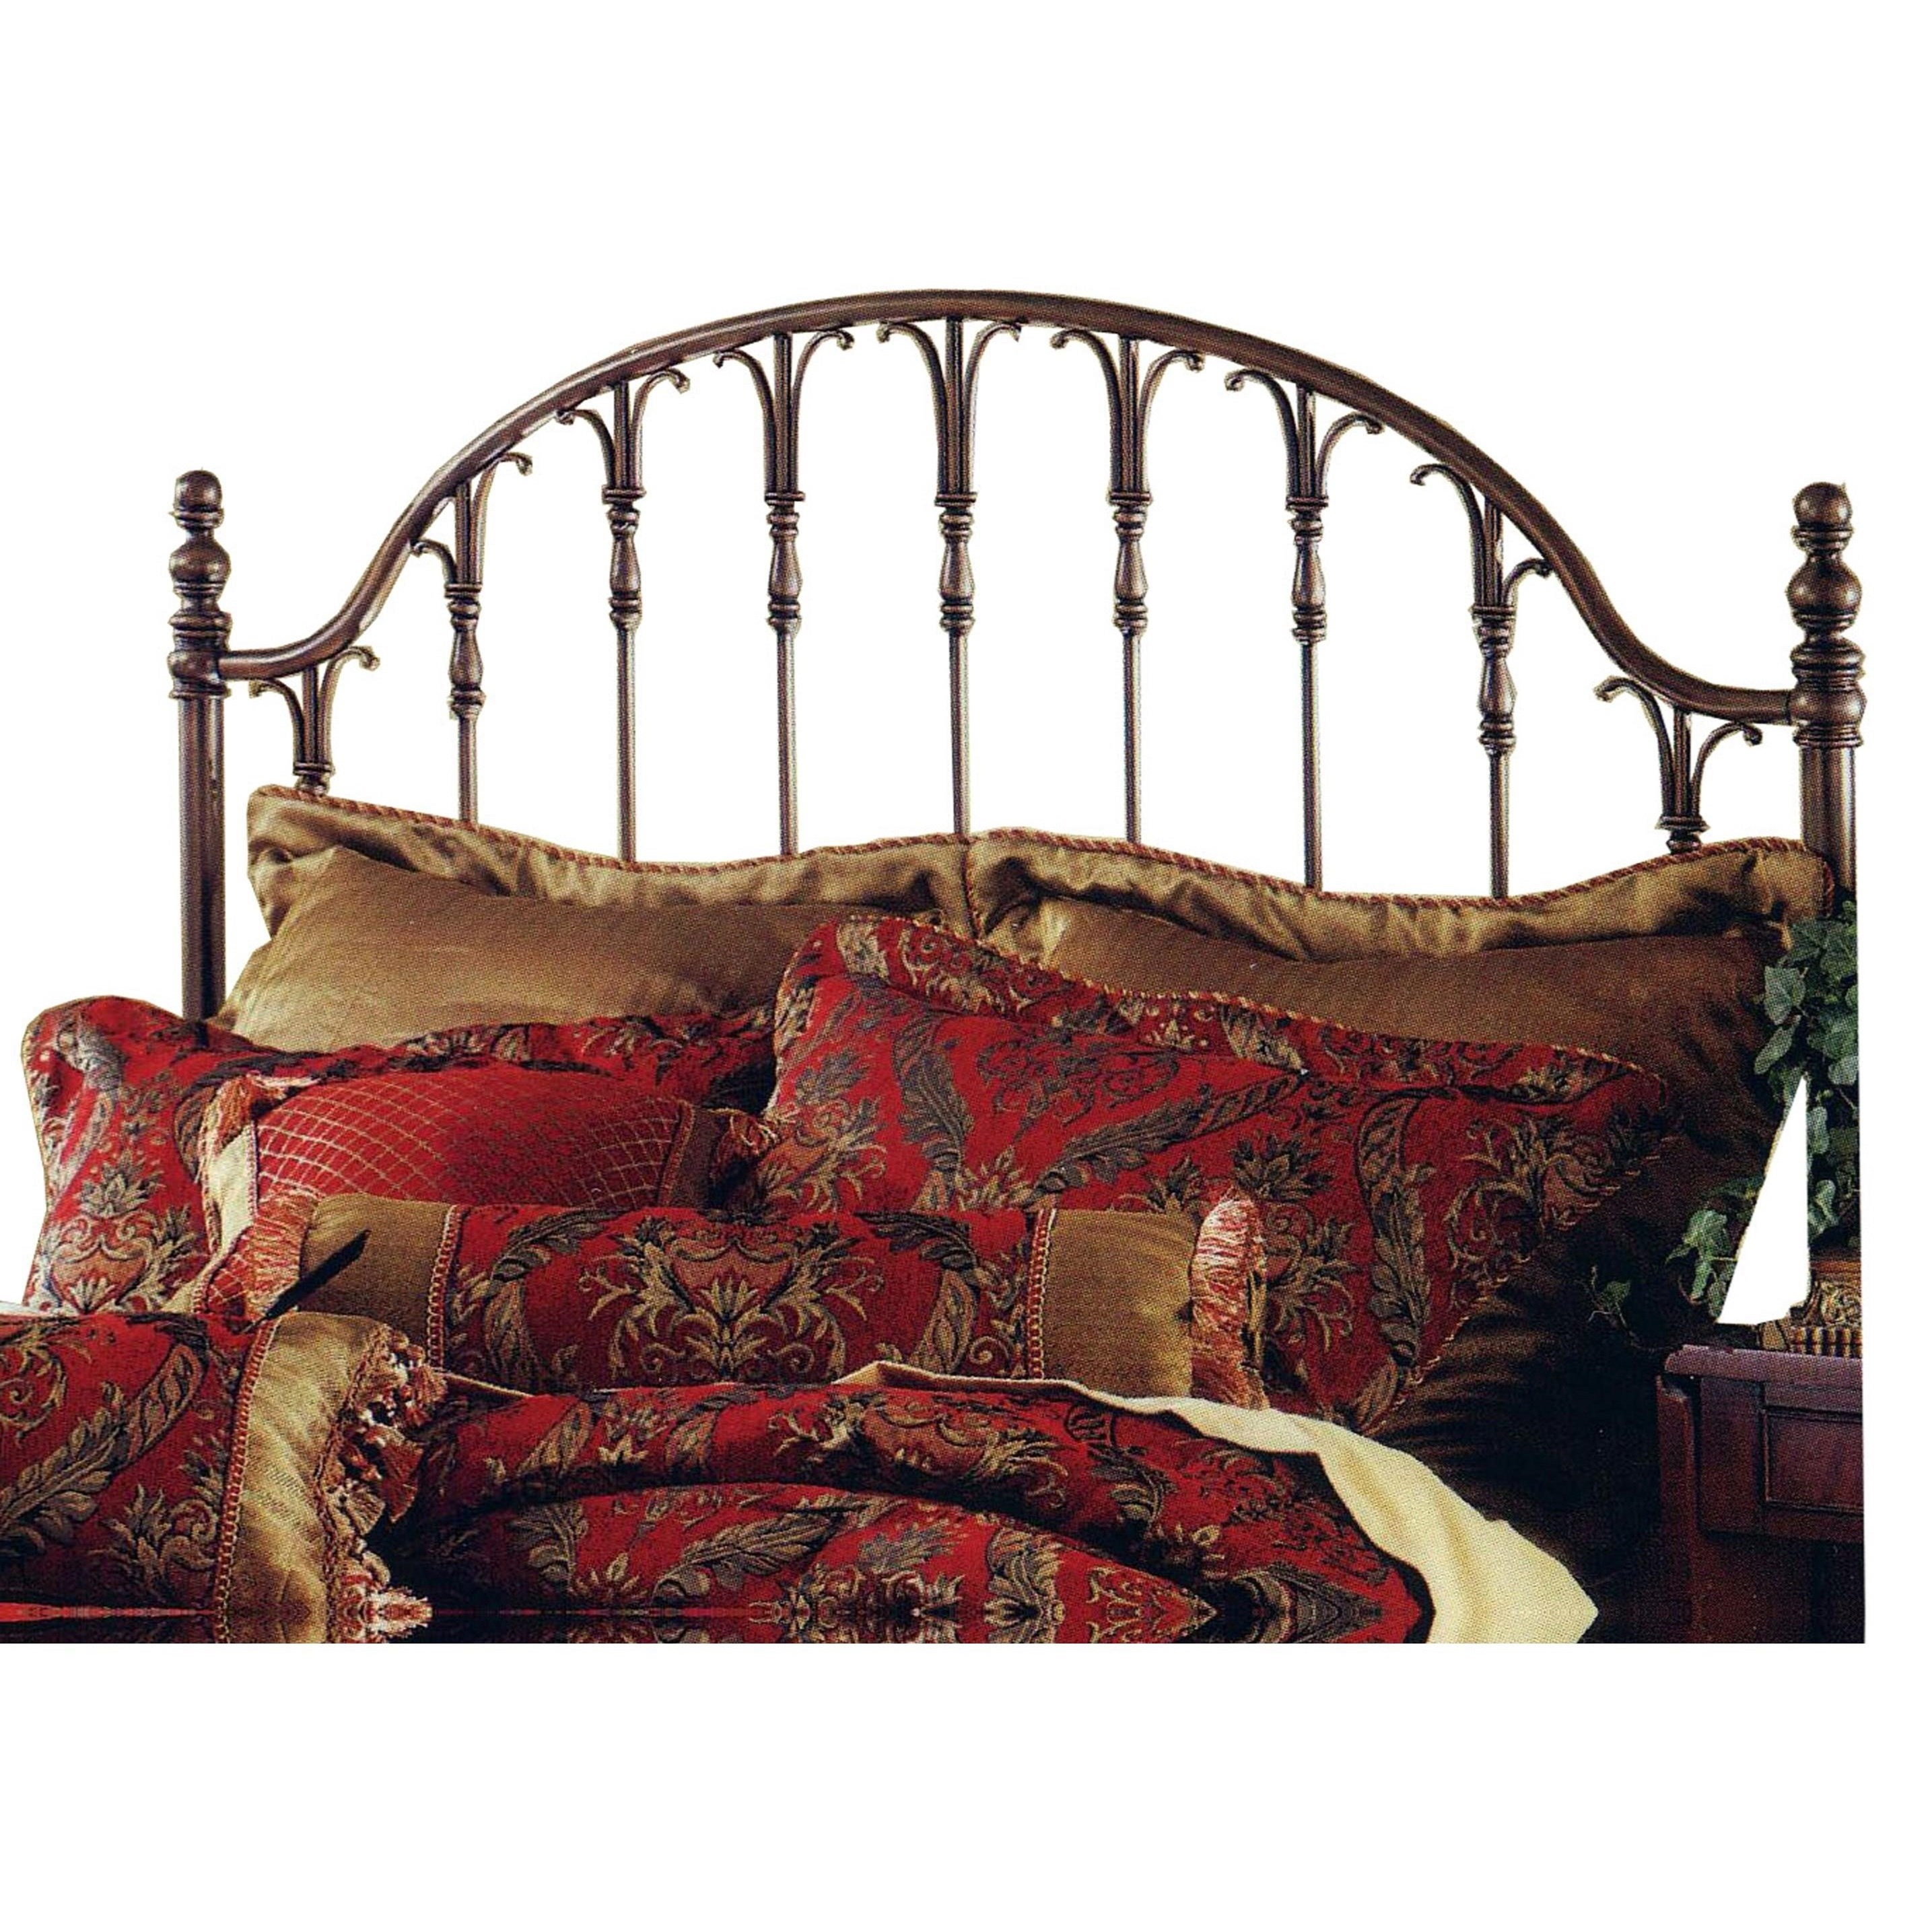 Hillsdale Metal Beds Tyler Headboard - King - Rails not included - Item Number: 1239HK